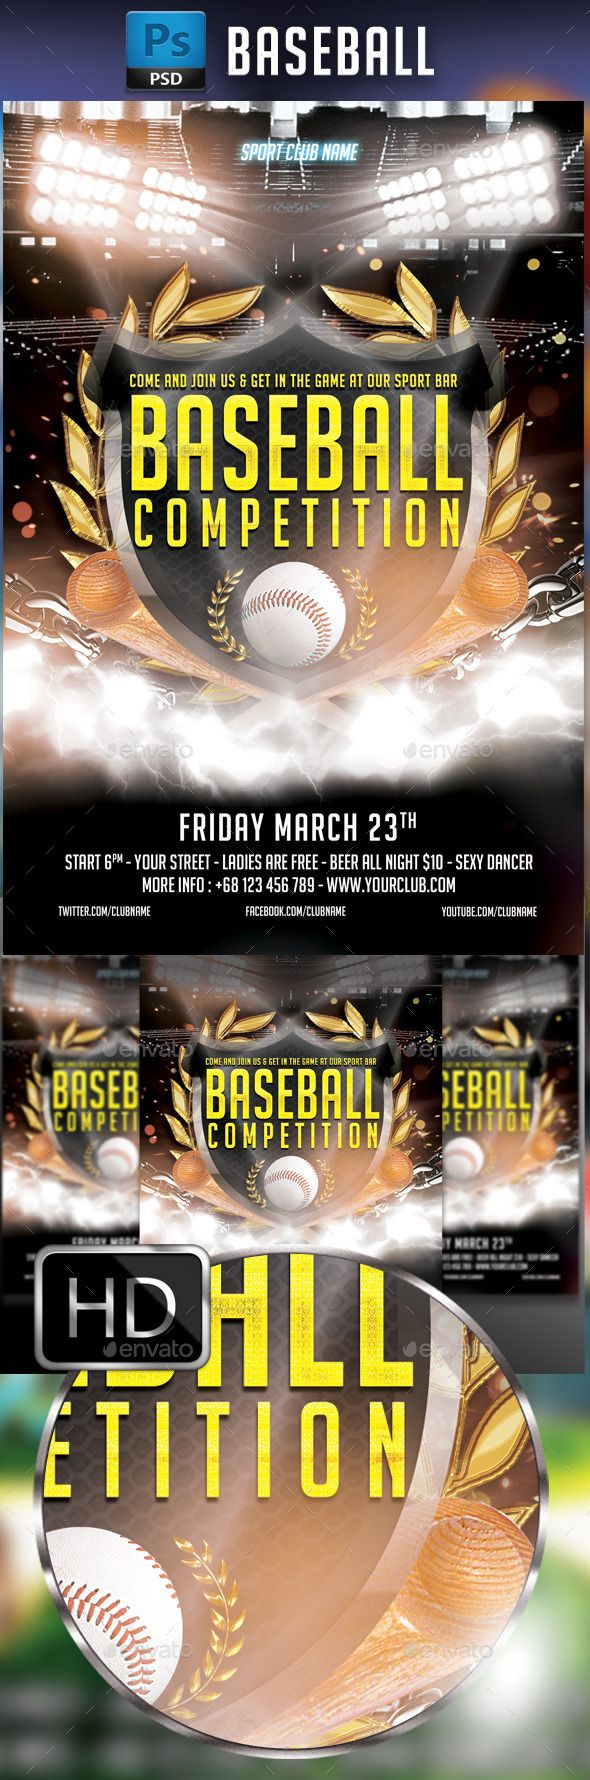 Baseball Flyer Pinterest Flyer Template Template And Event Flyers